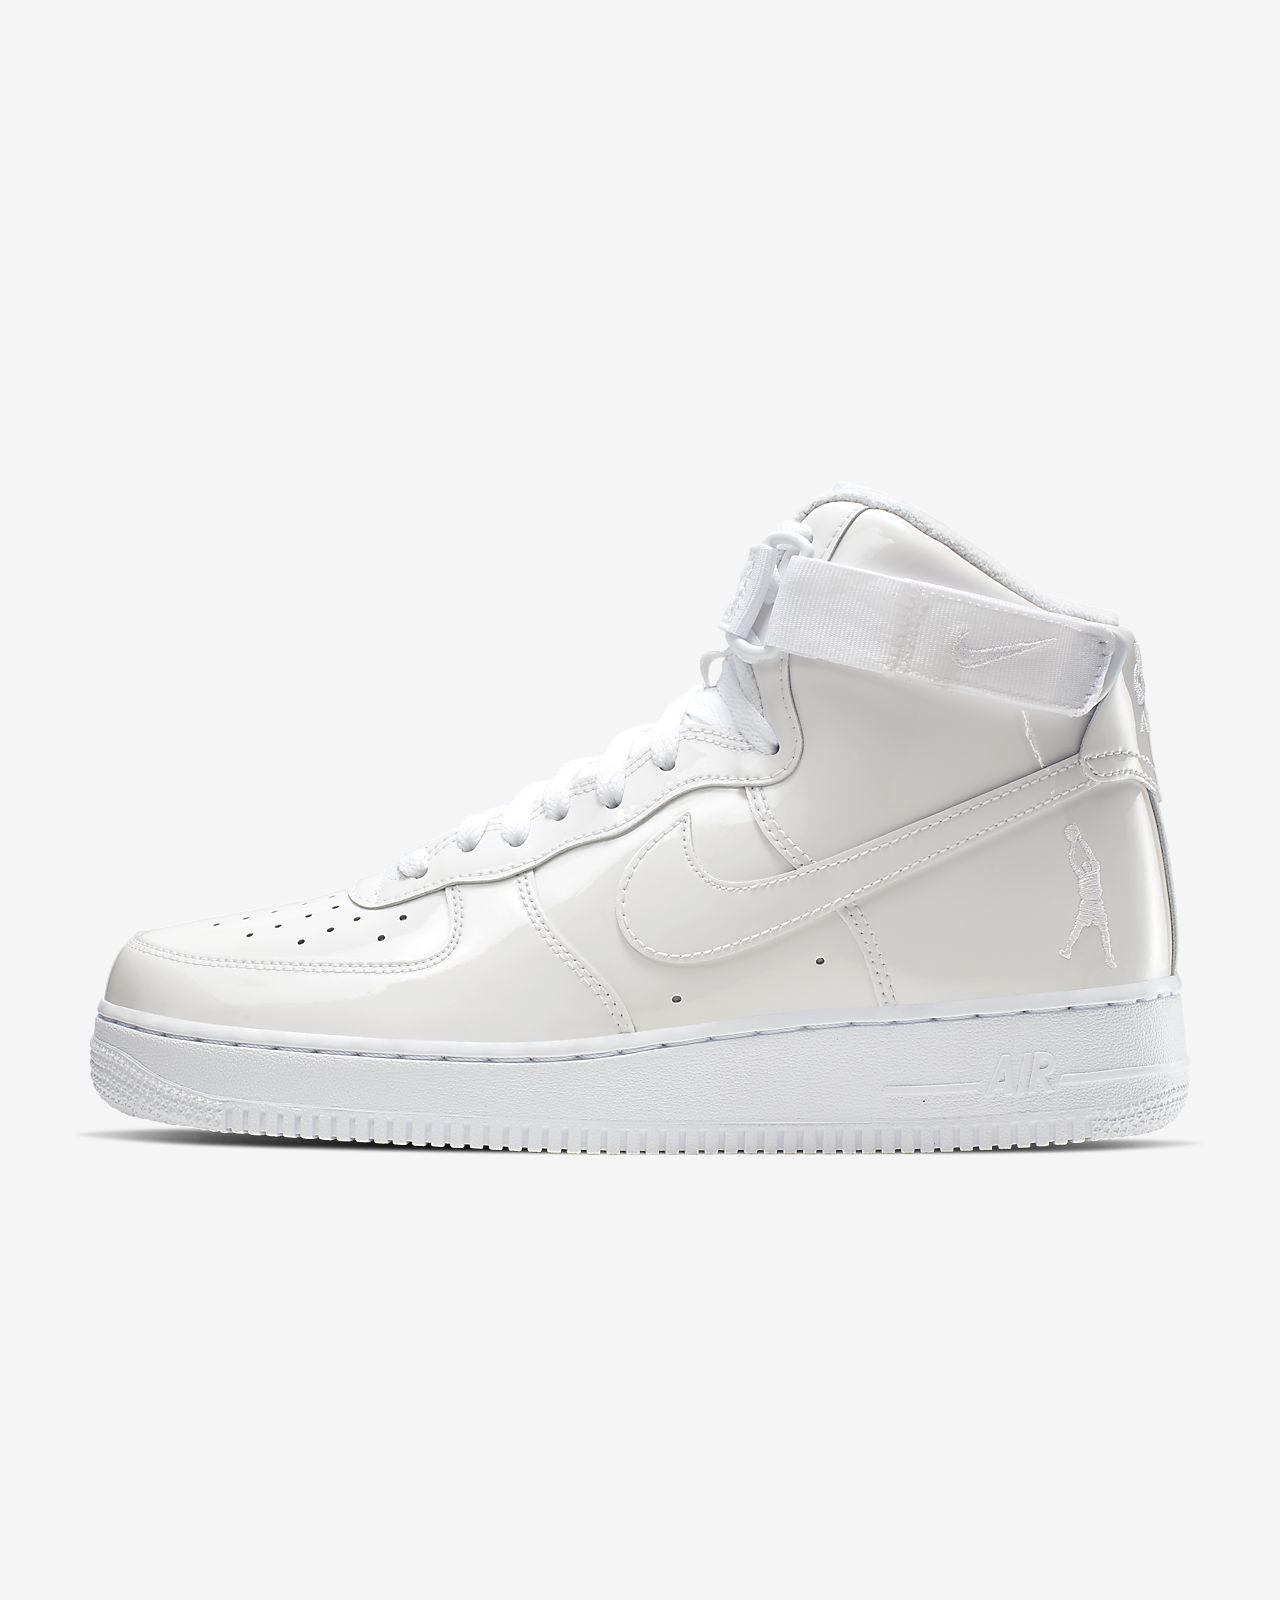 new product b0a3f 2bde7 ... Nike Air Force 1 High Retro QS Men s Shoe